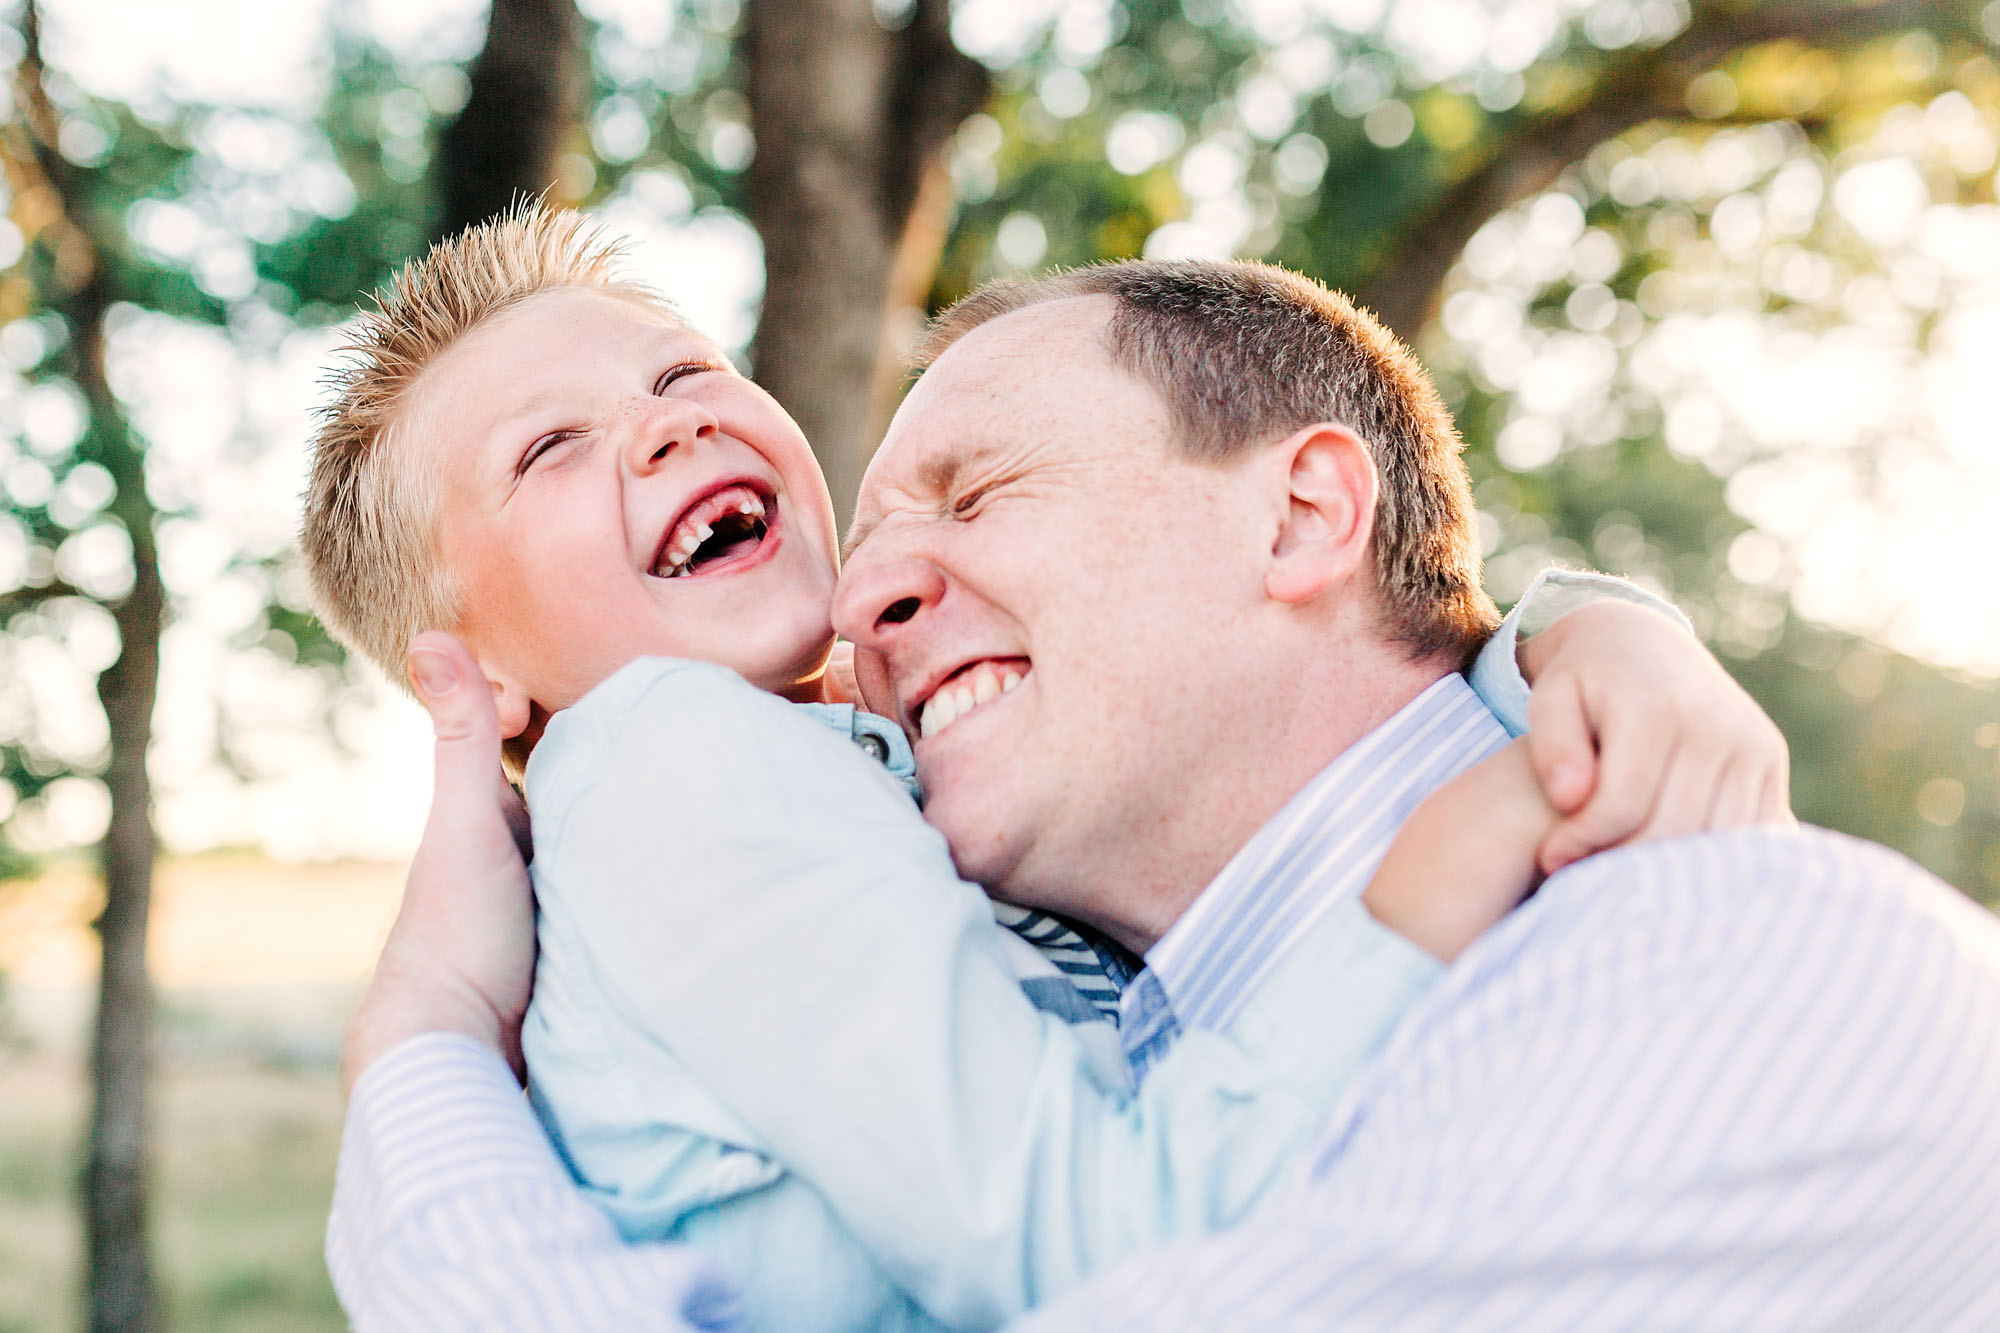 A father and son share a happy moment together during a family photo shoot with photographer Amy Wright in Roseville, California.